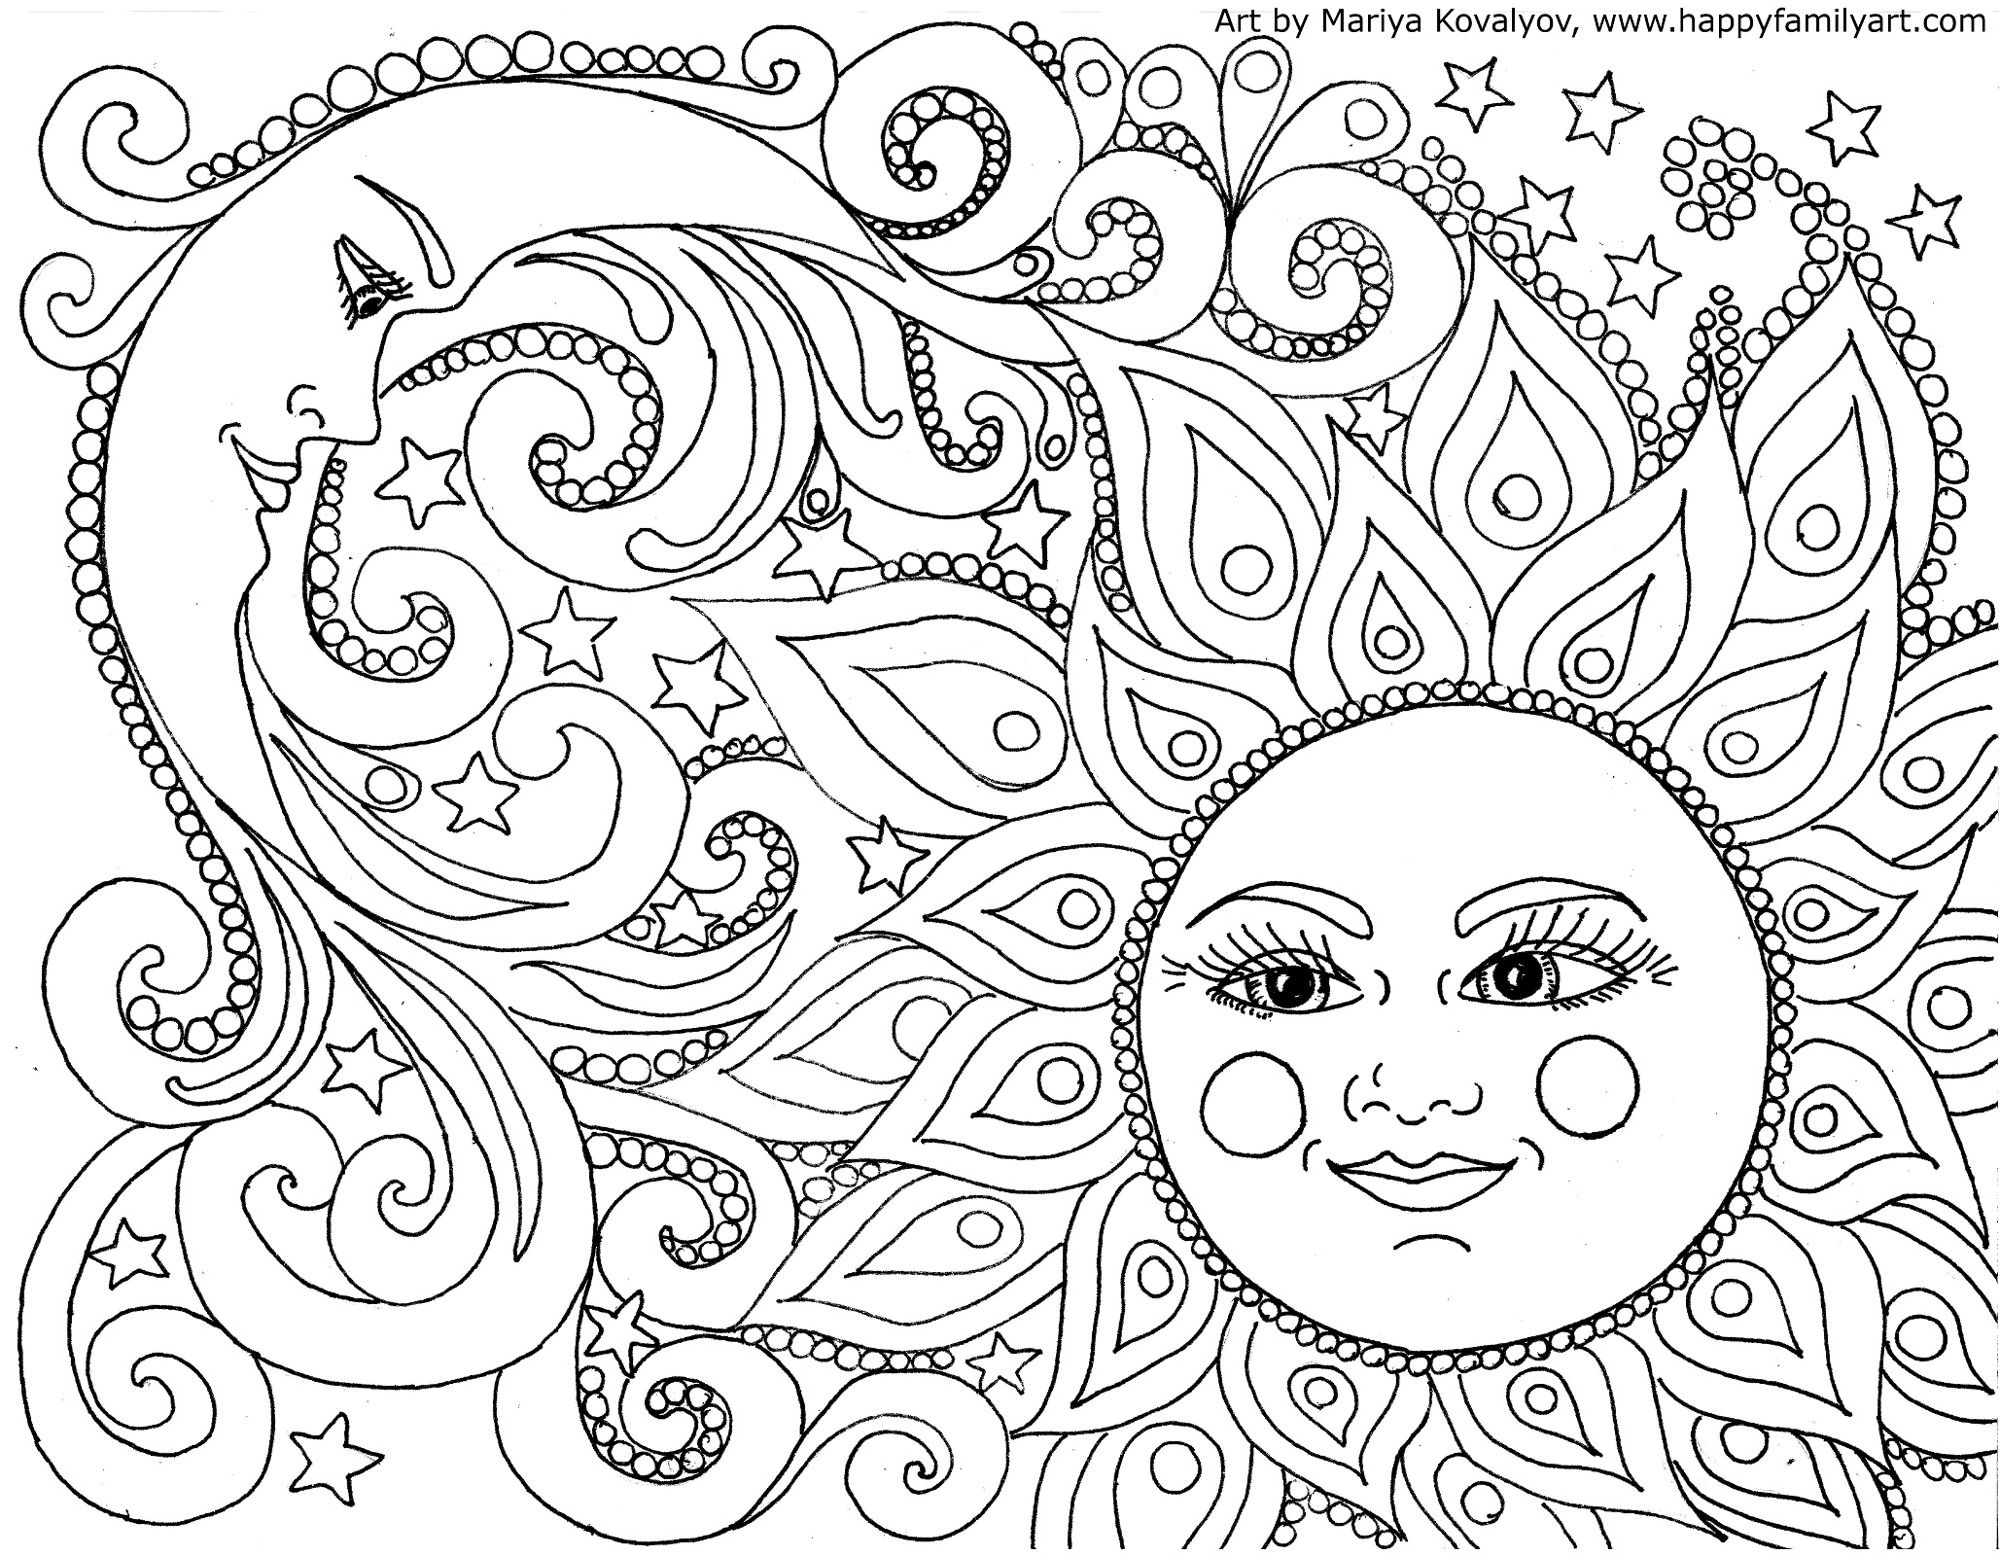 Zen coloring books for adults app - I Made Many Great Fun And Original Coloring Pages Color Your Heart Out